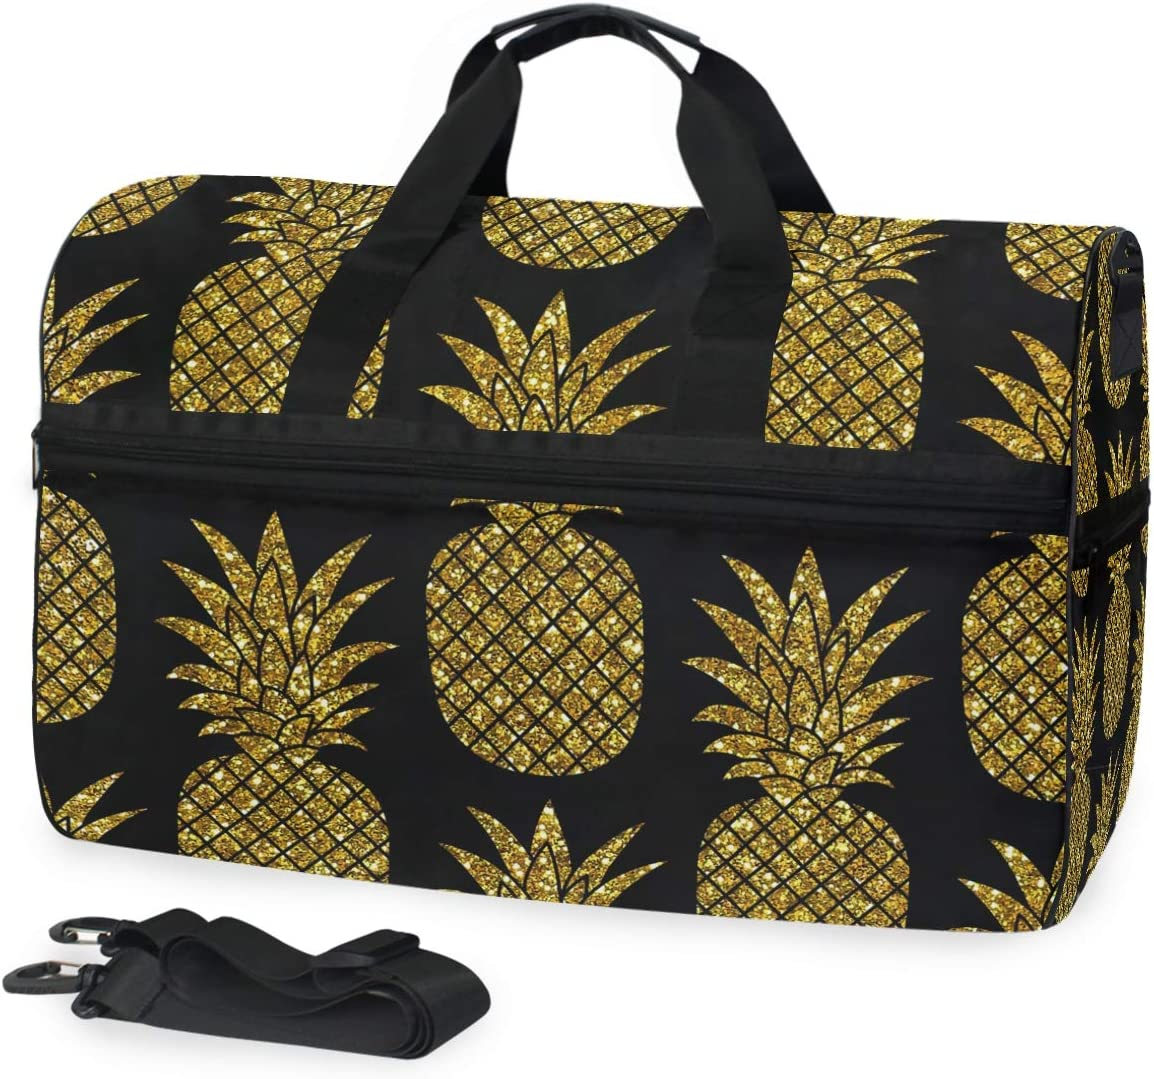 Gold Glitter Pineapple Sports Gym Bag with Shoes Compartment Travel Duffel Bag for Men and Women